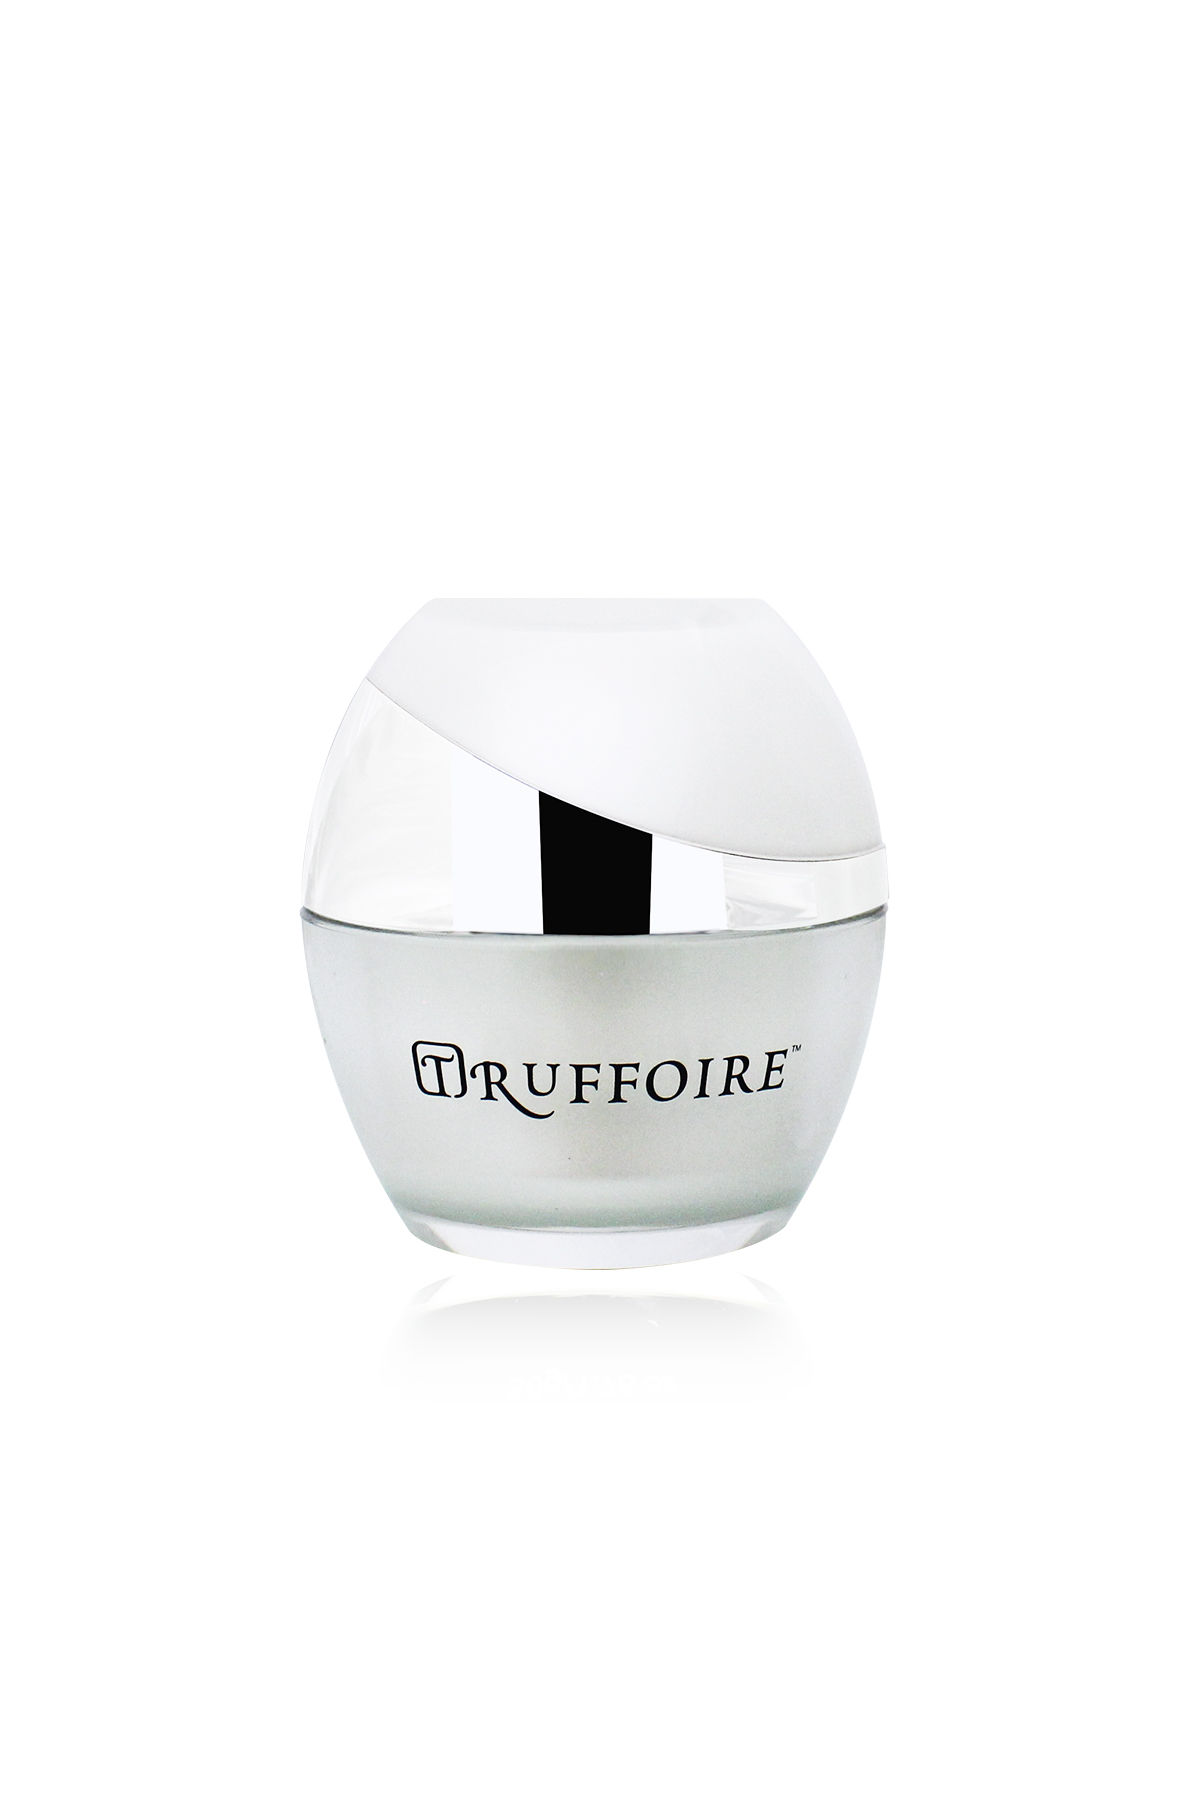 Truffoire Care Skin Reviews